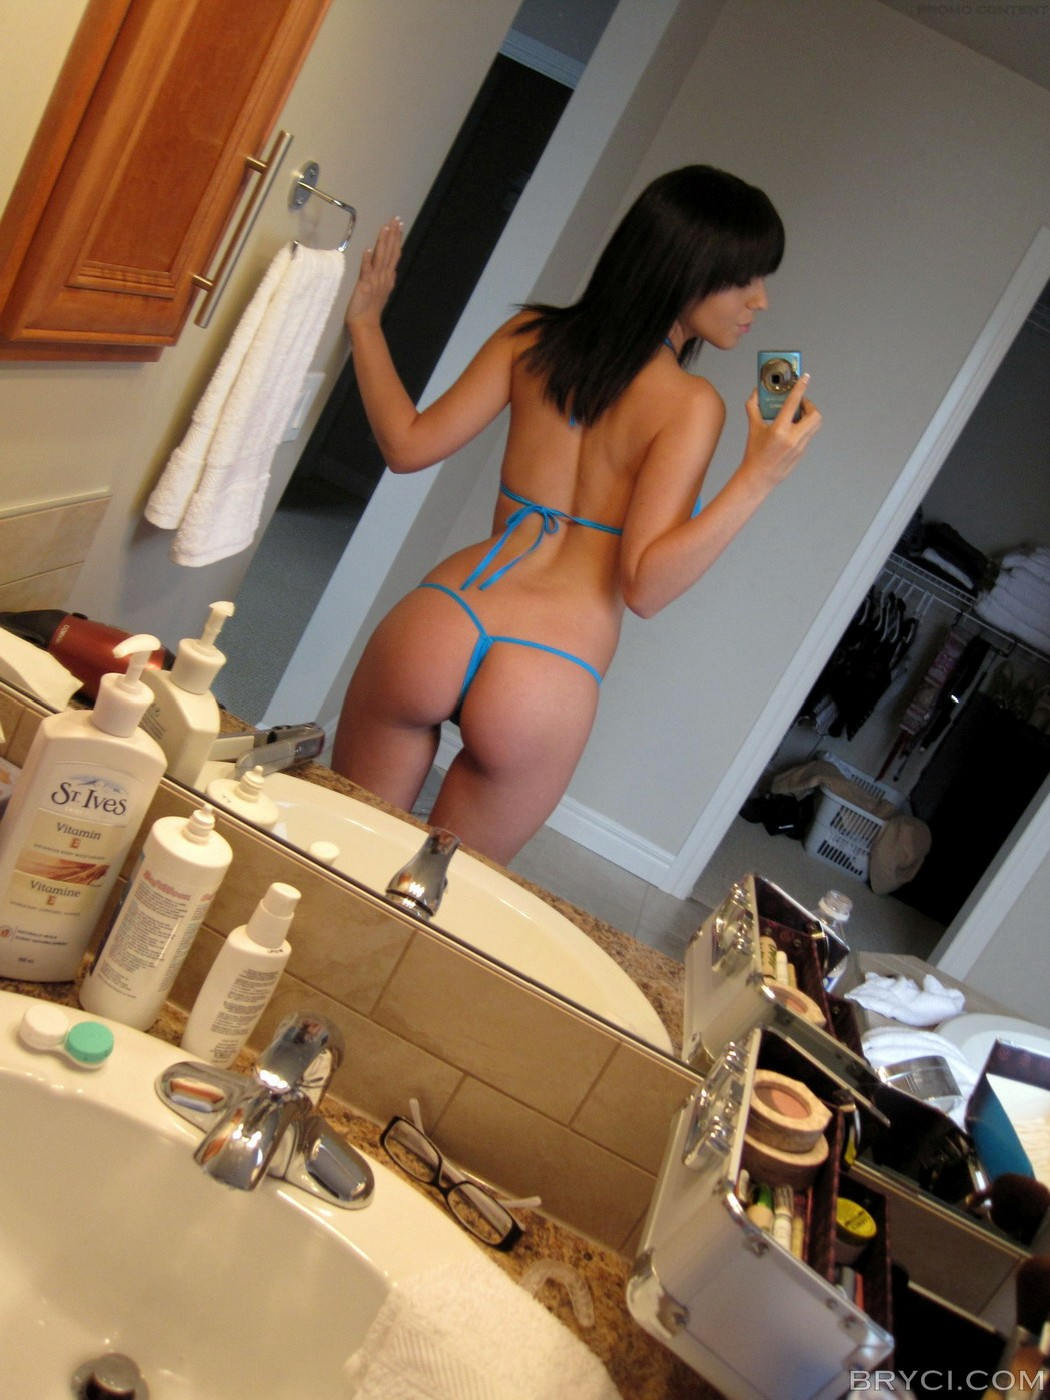 bryci-tits-naked-self-shots-mirror-bathroom-01